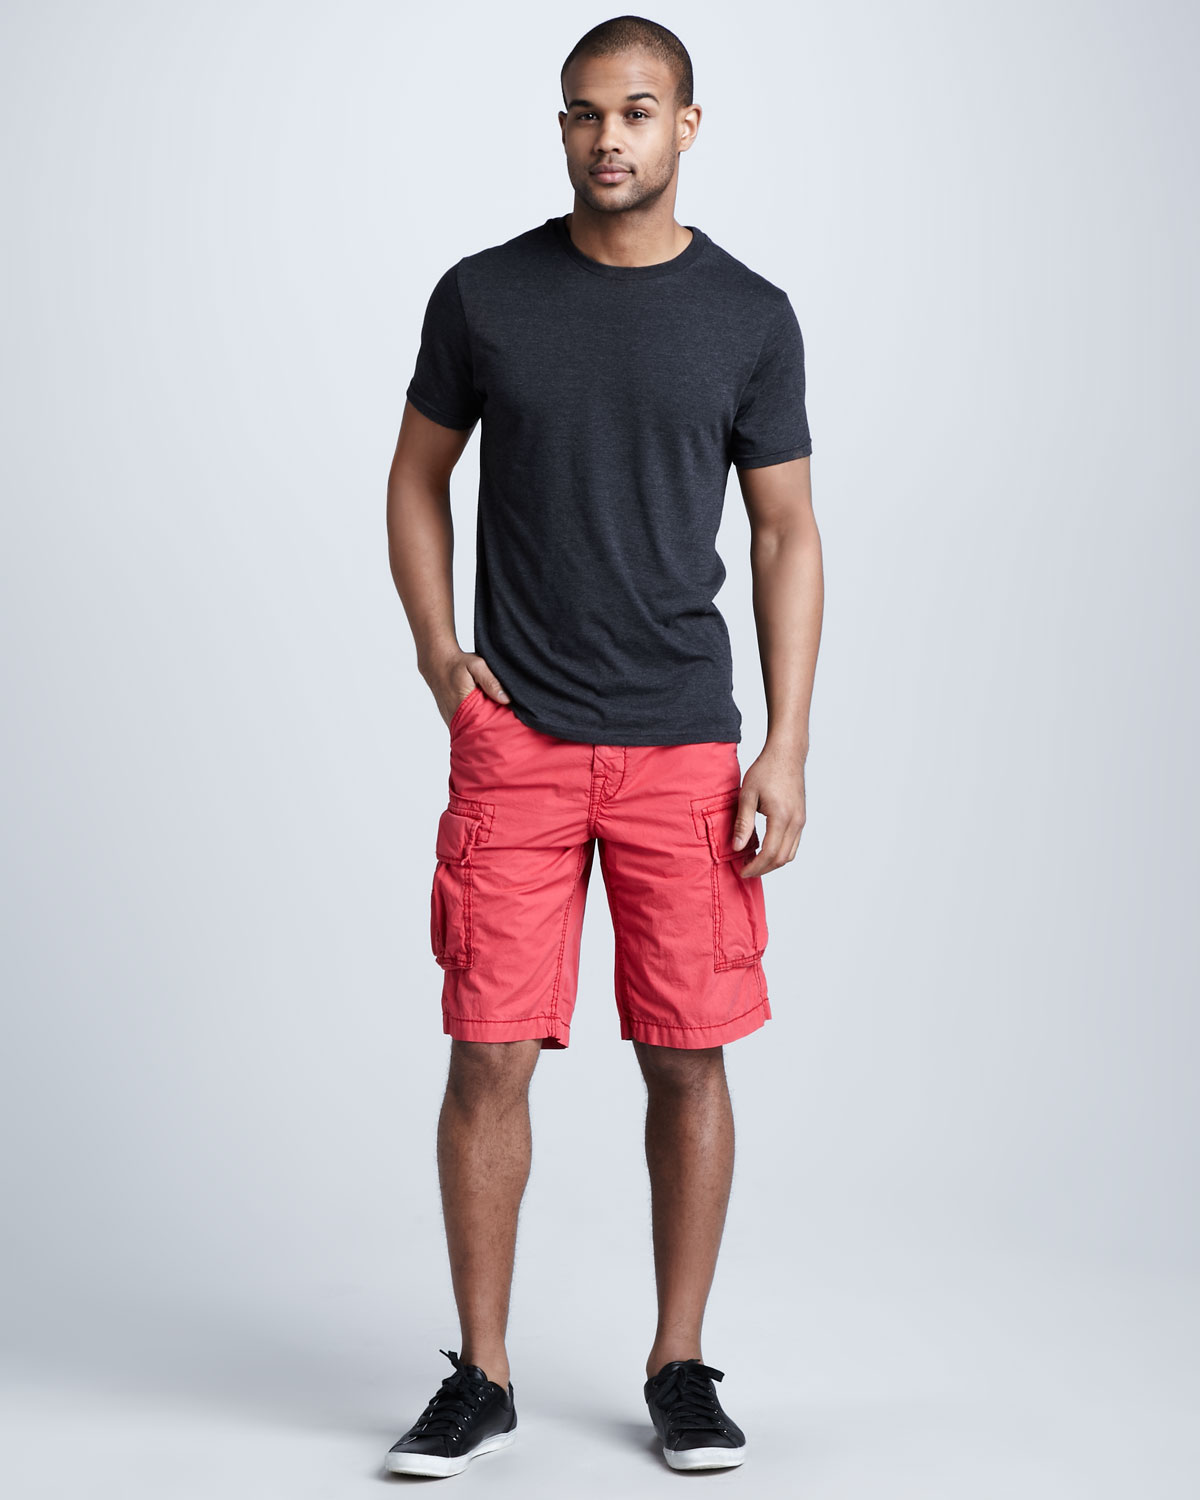 Mens Red Shorts - The Else